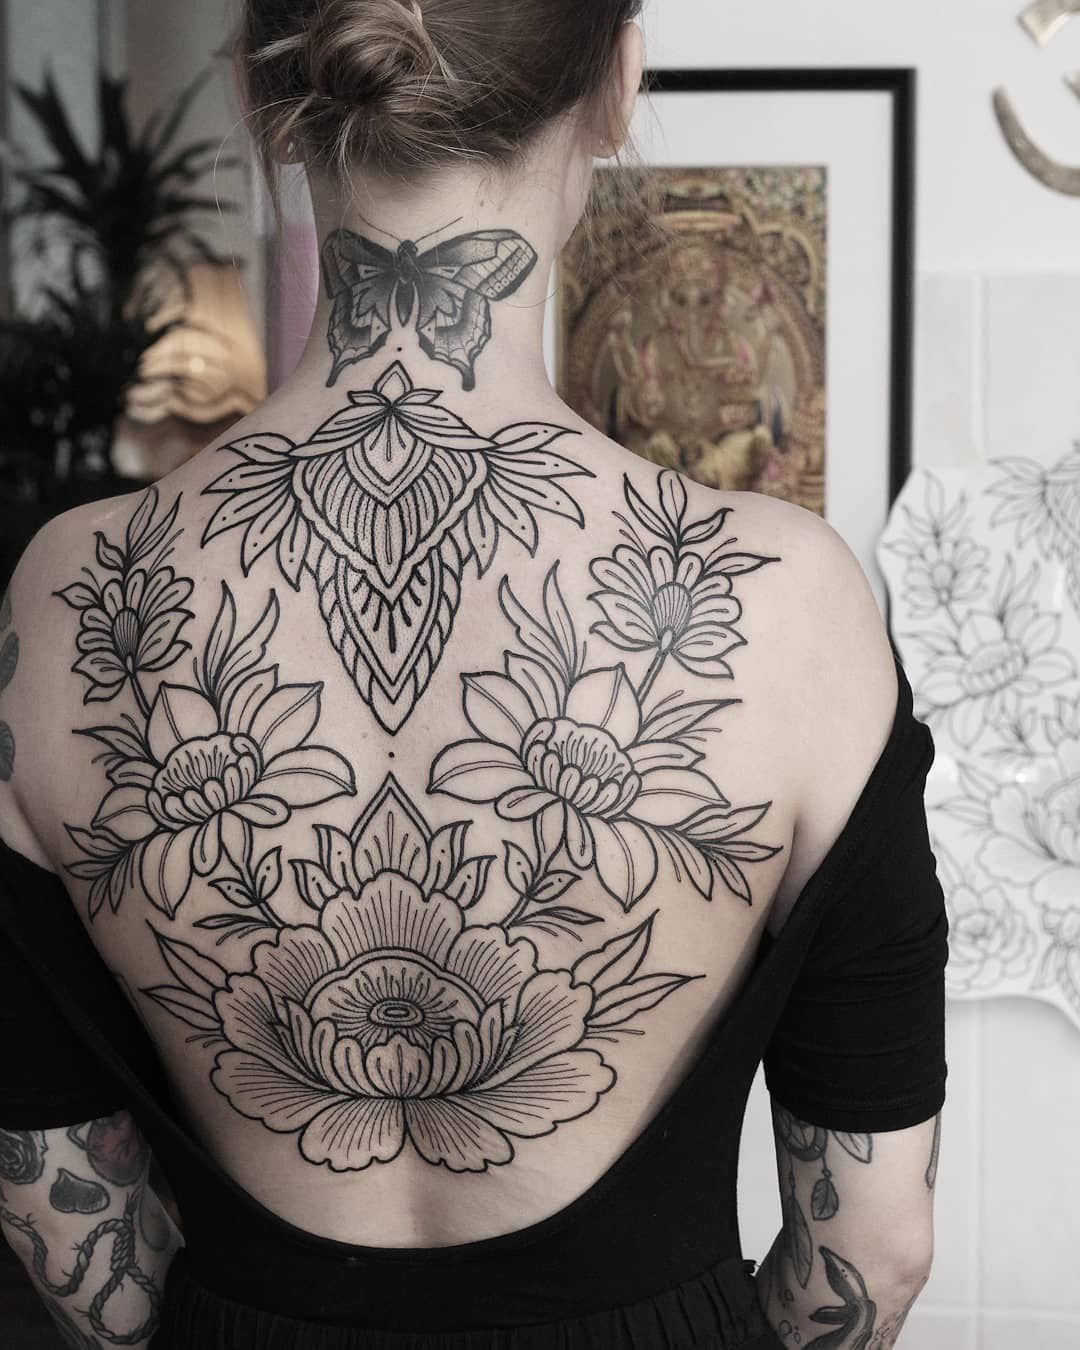 """Photo of Jule Rothe on Instagram: """"backpiece in progress 🌿 looking forward to finish this one 💫🙏 butterfly not by me 🙏…"""""""